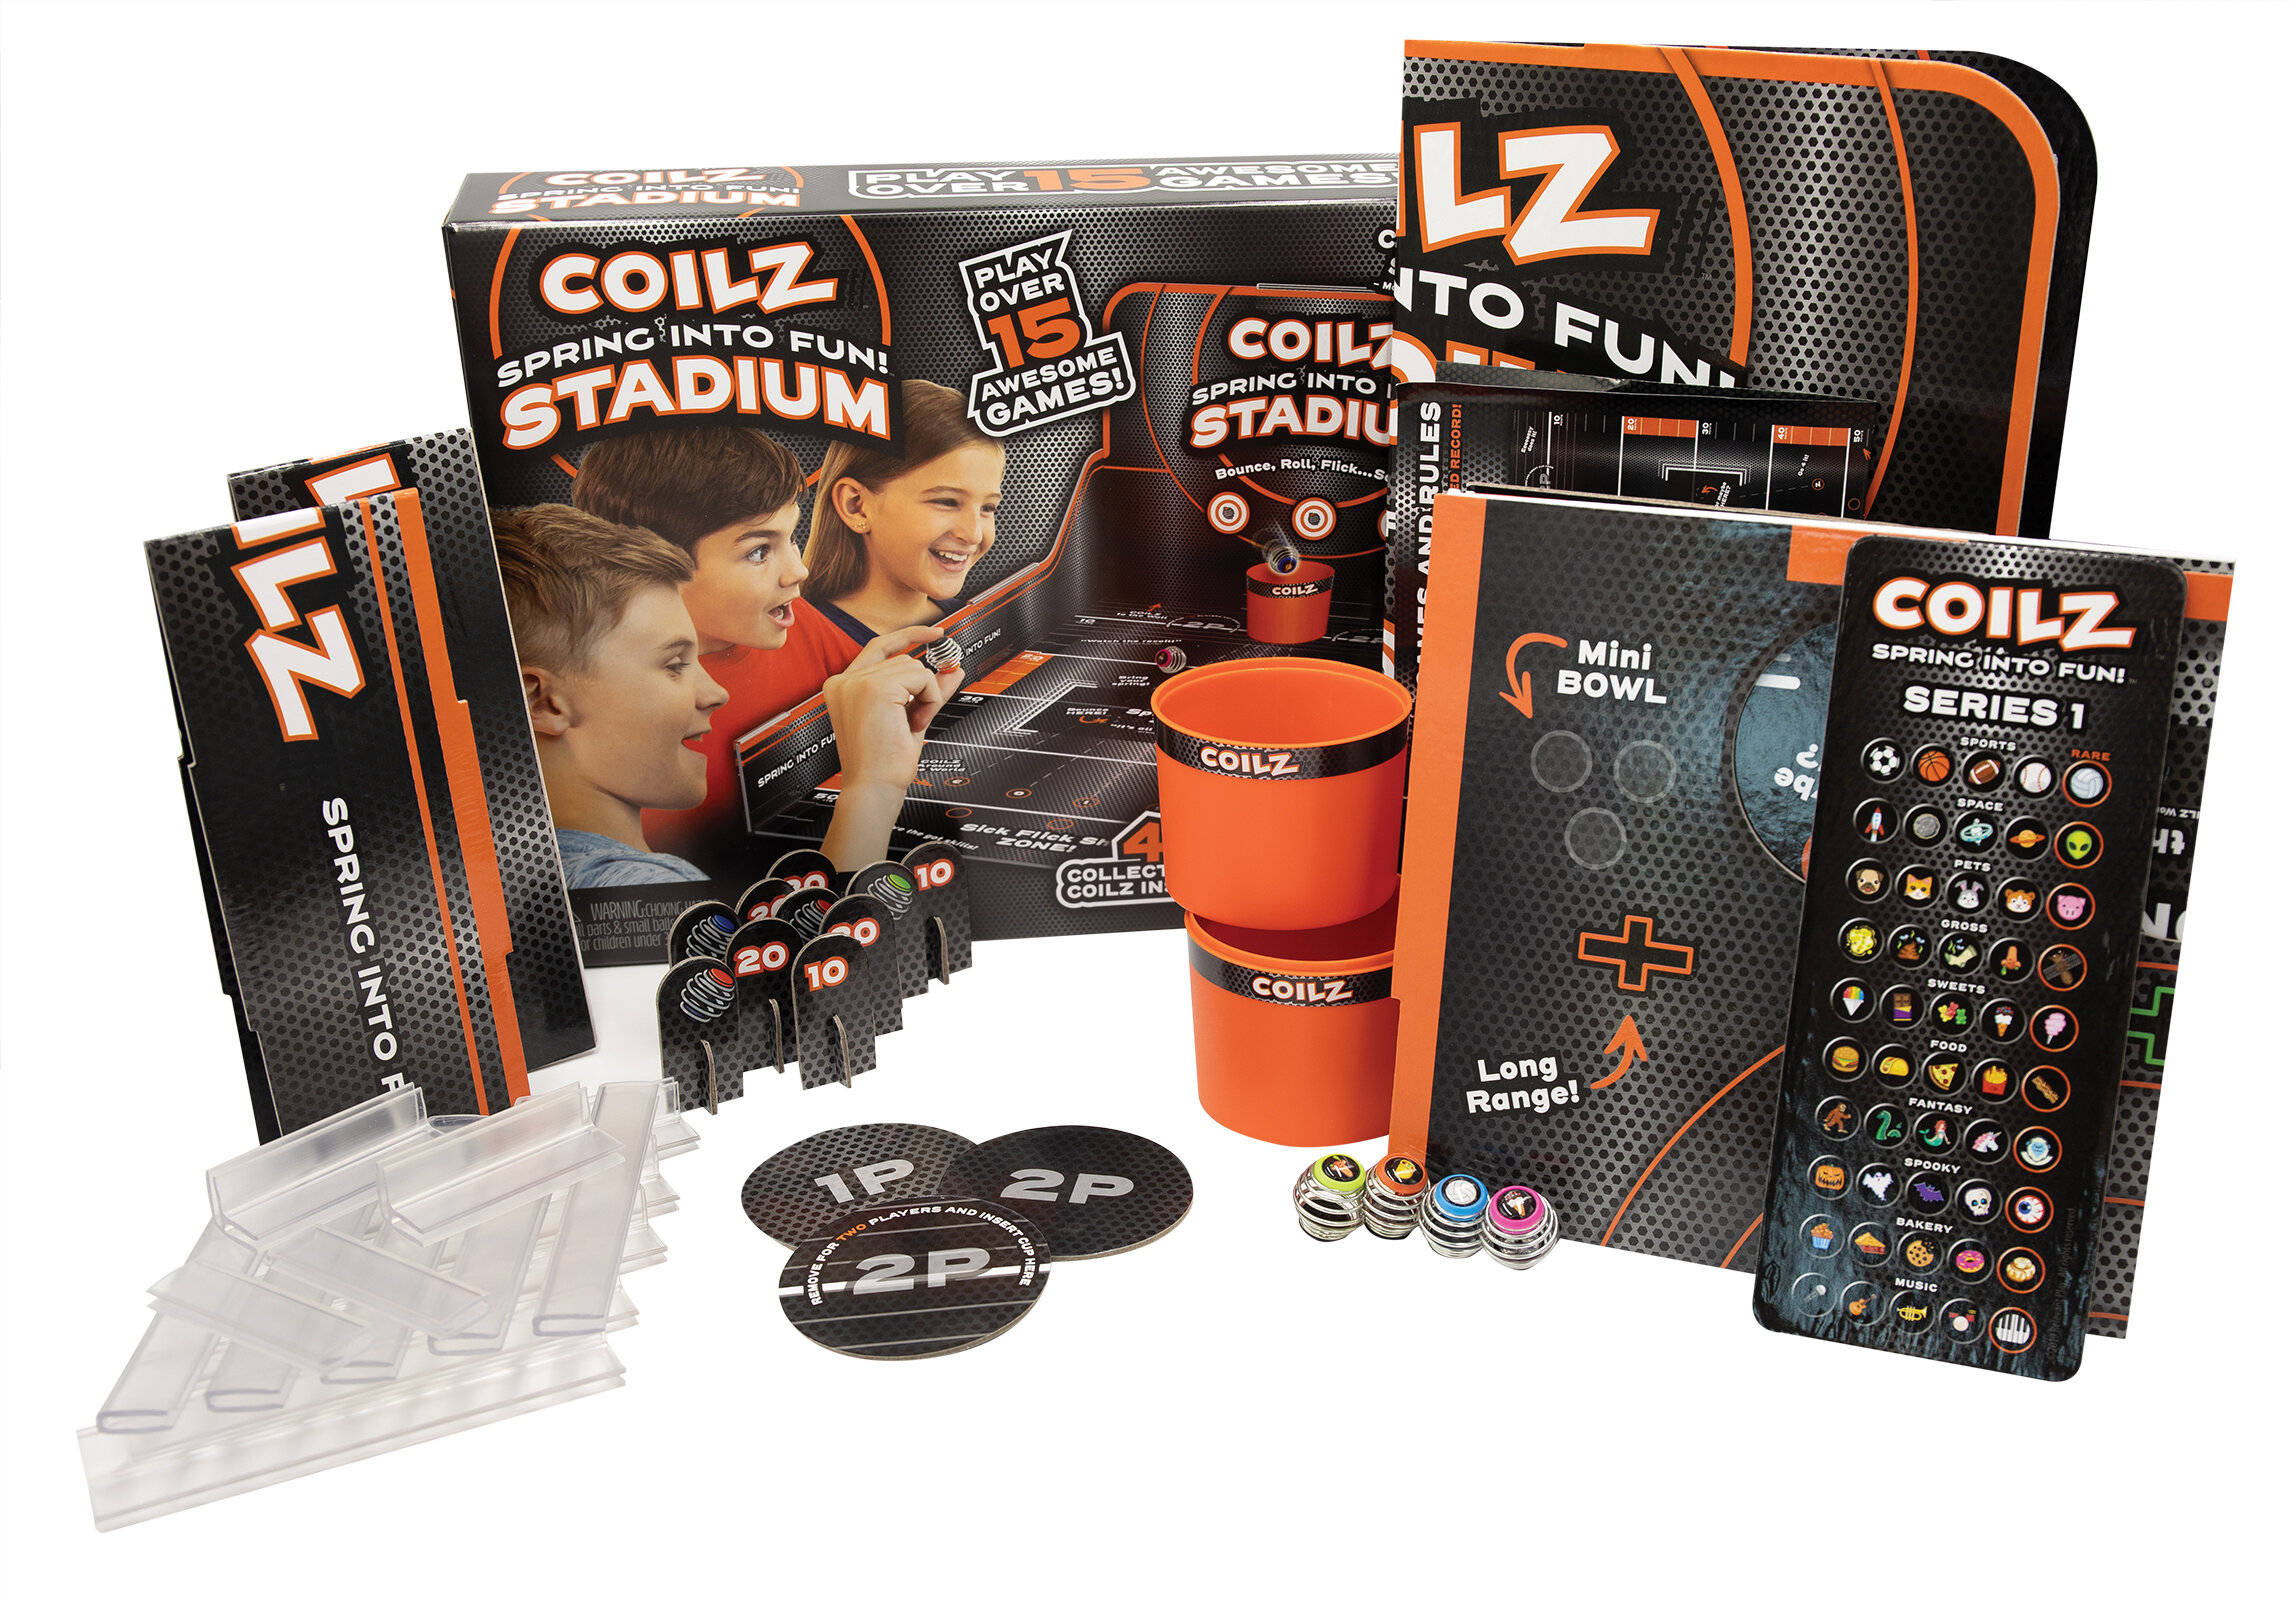 Coilz_Stadium_Package_with_Parts_-_hi-res.jpg